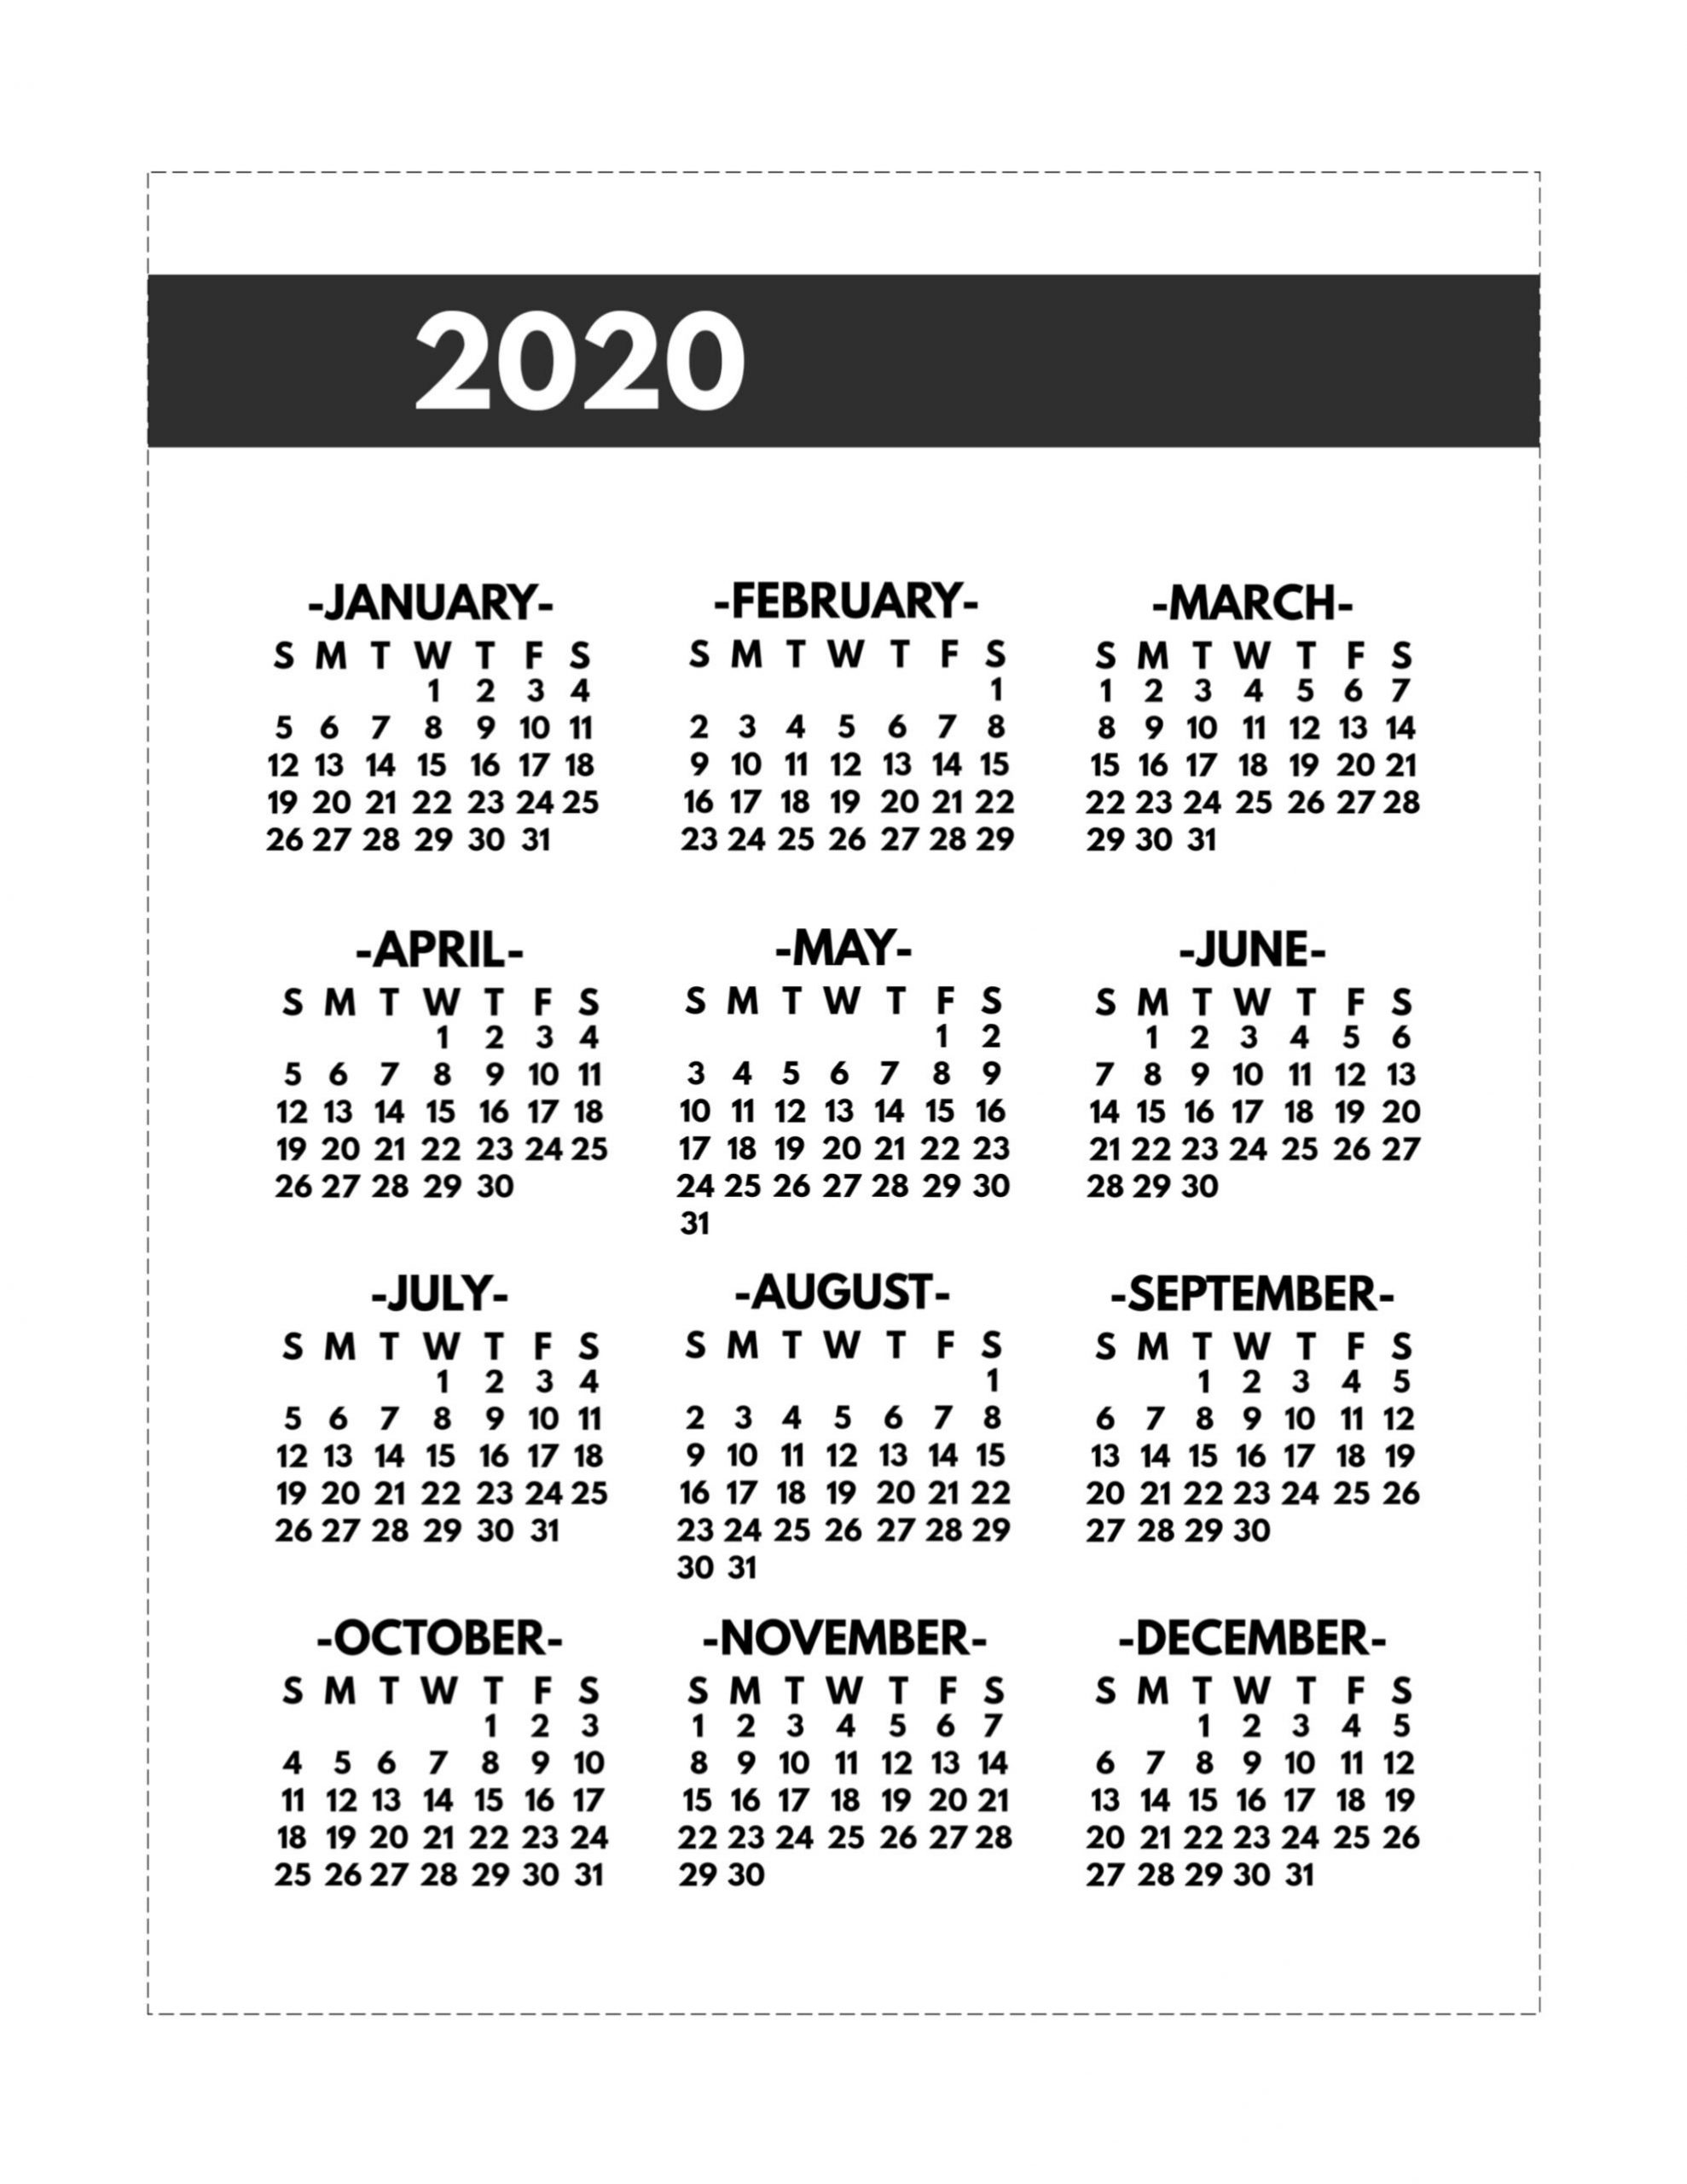 2020 Free Printable Calendars Without Downloading At A Free Printable Calendar Without Downloading